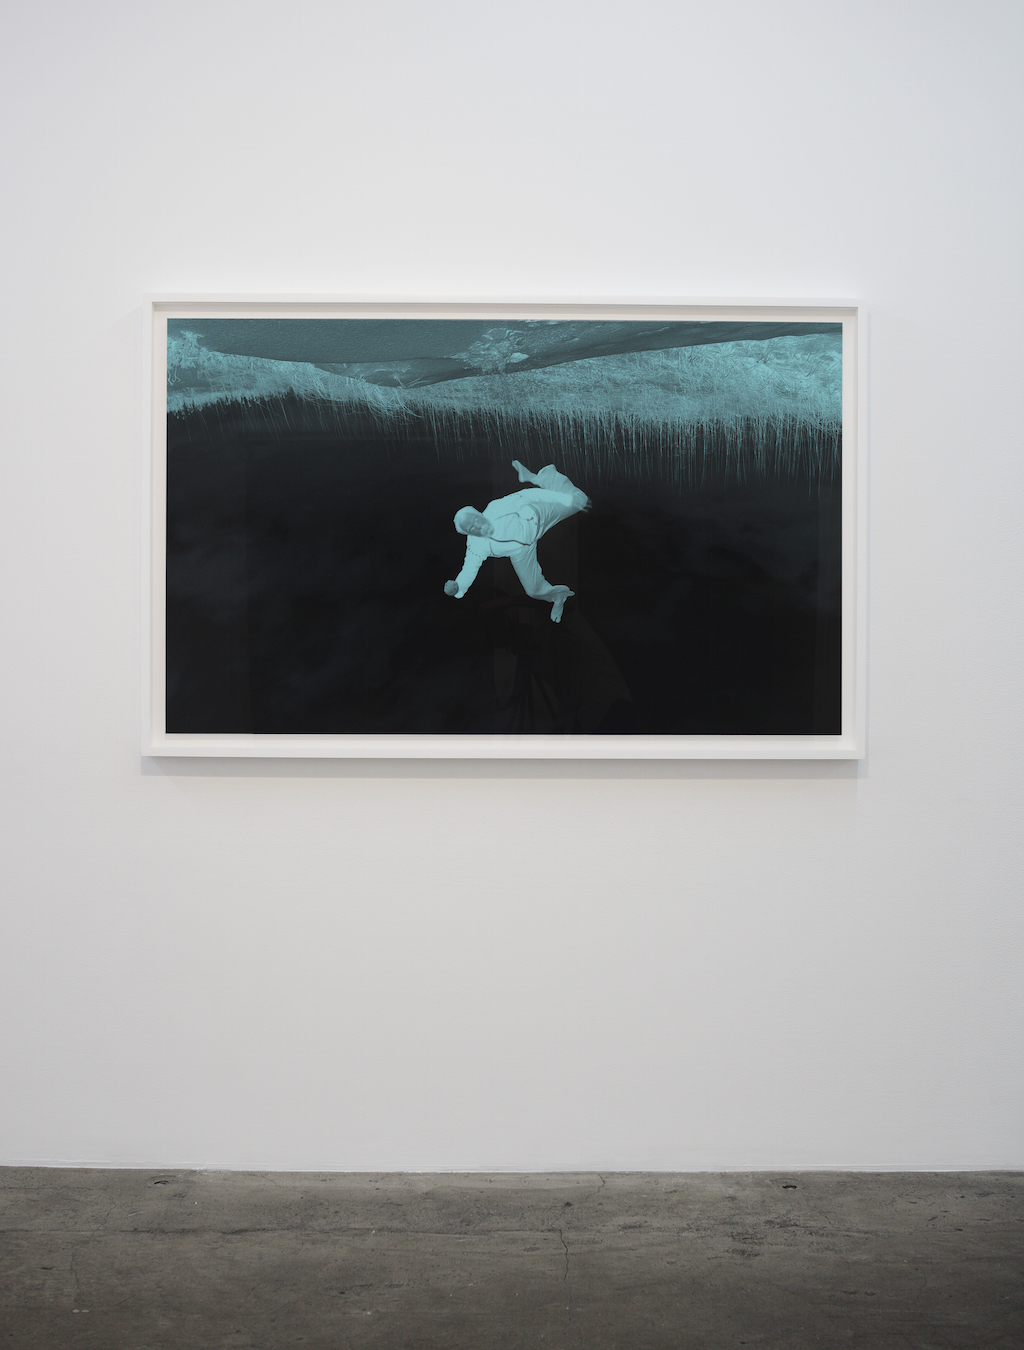 Pascal Grandmaison, Fake imagery of a world upside down, 2009, impression au jet d'encre ultrachrome, 37 x 60 pouces